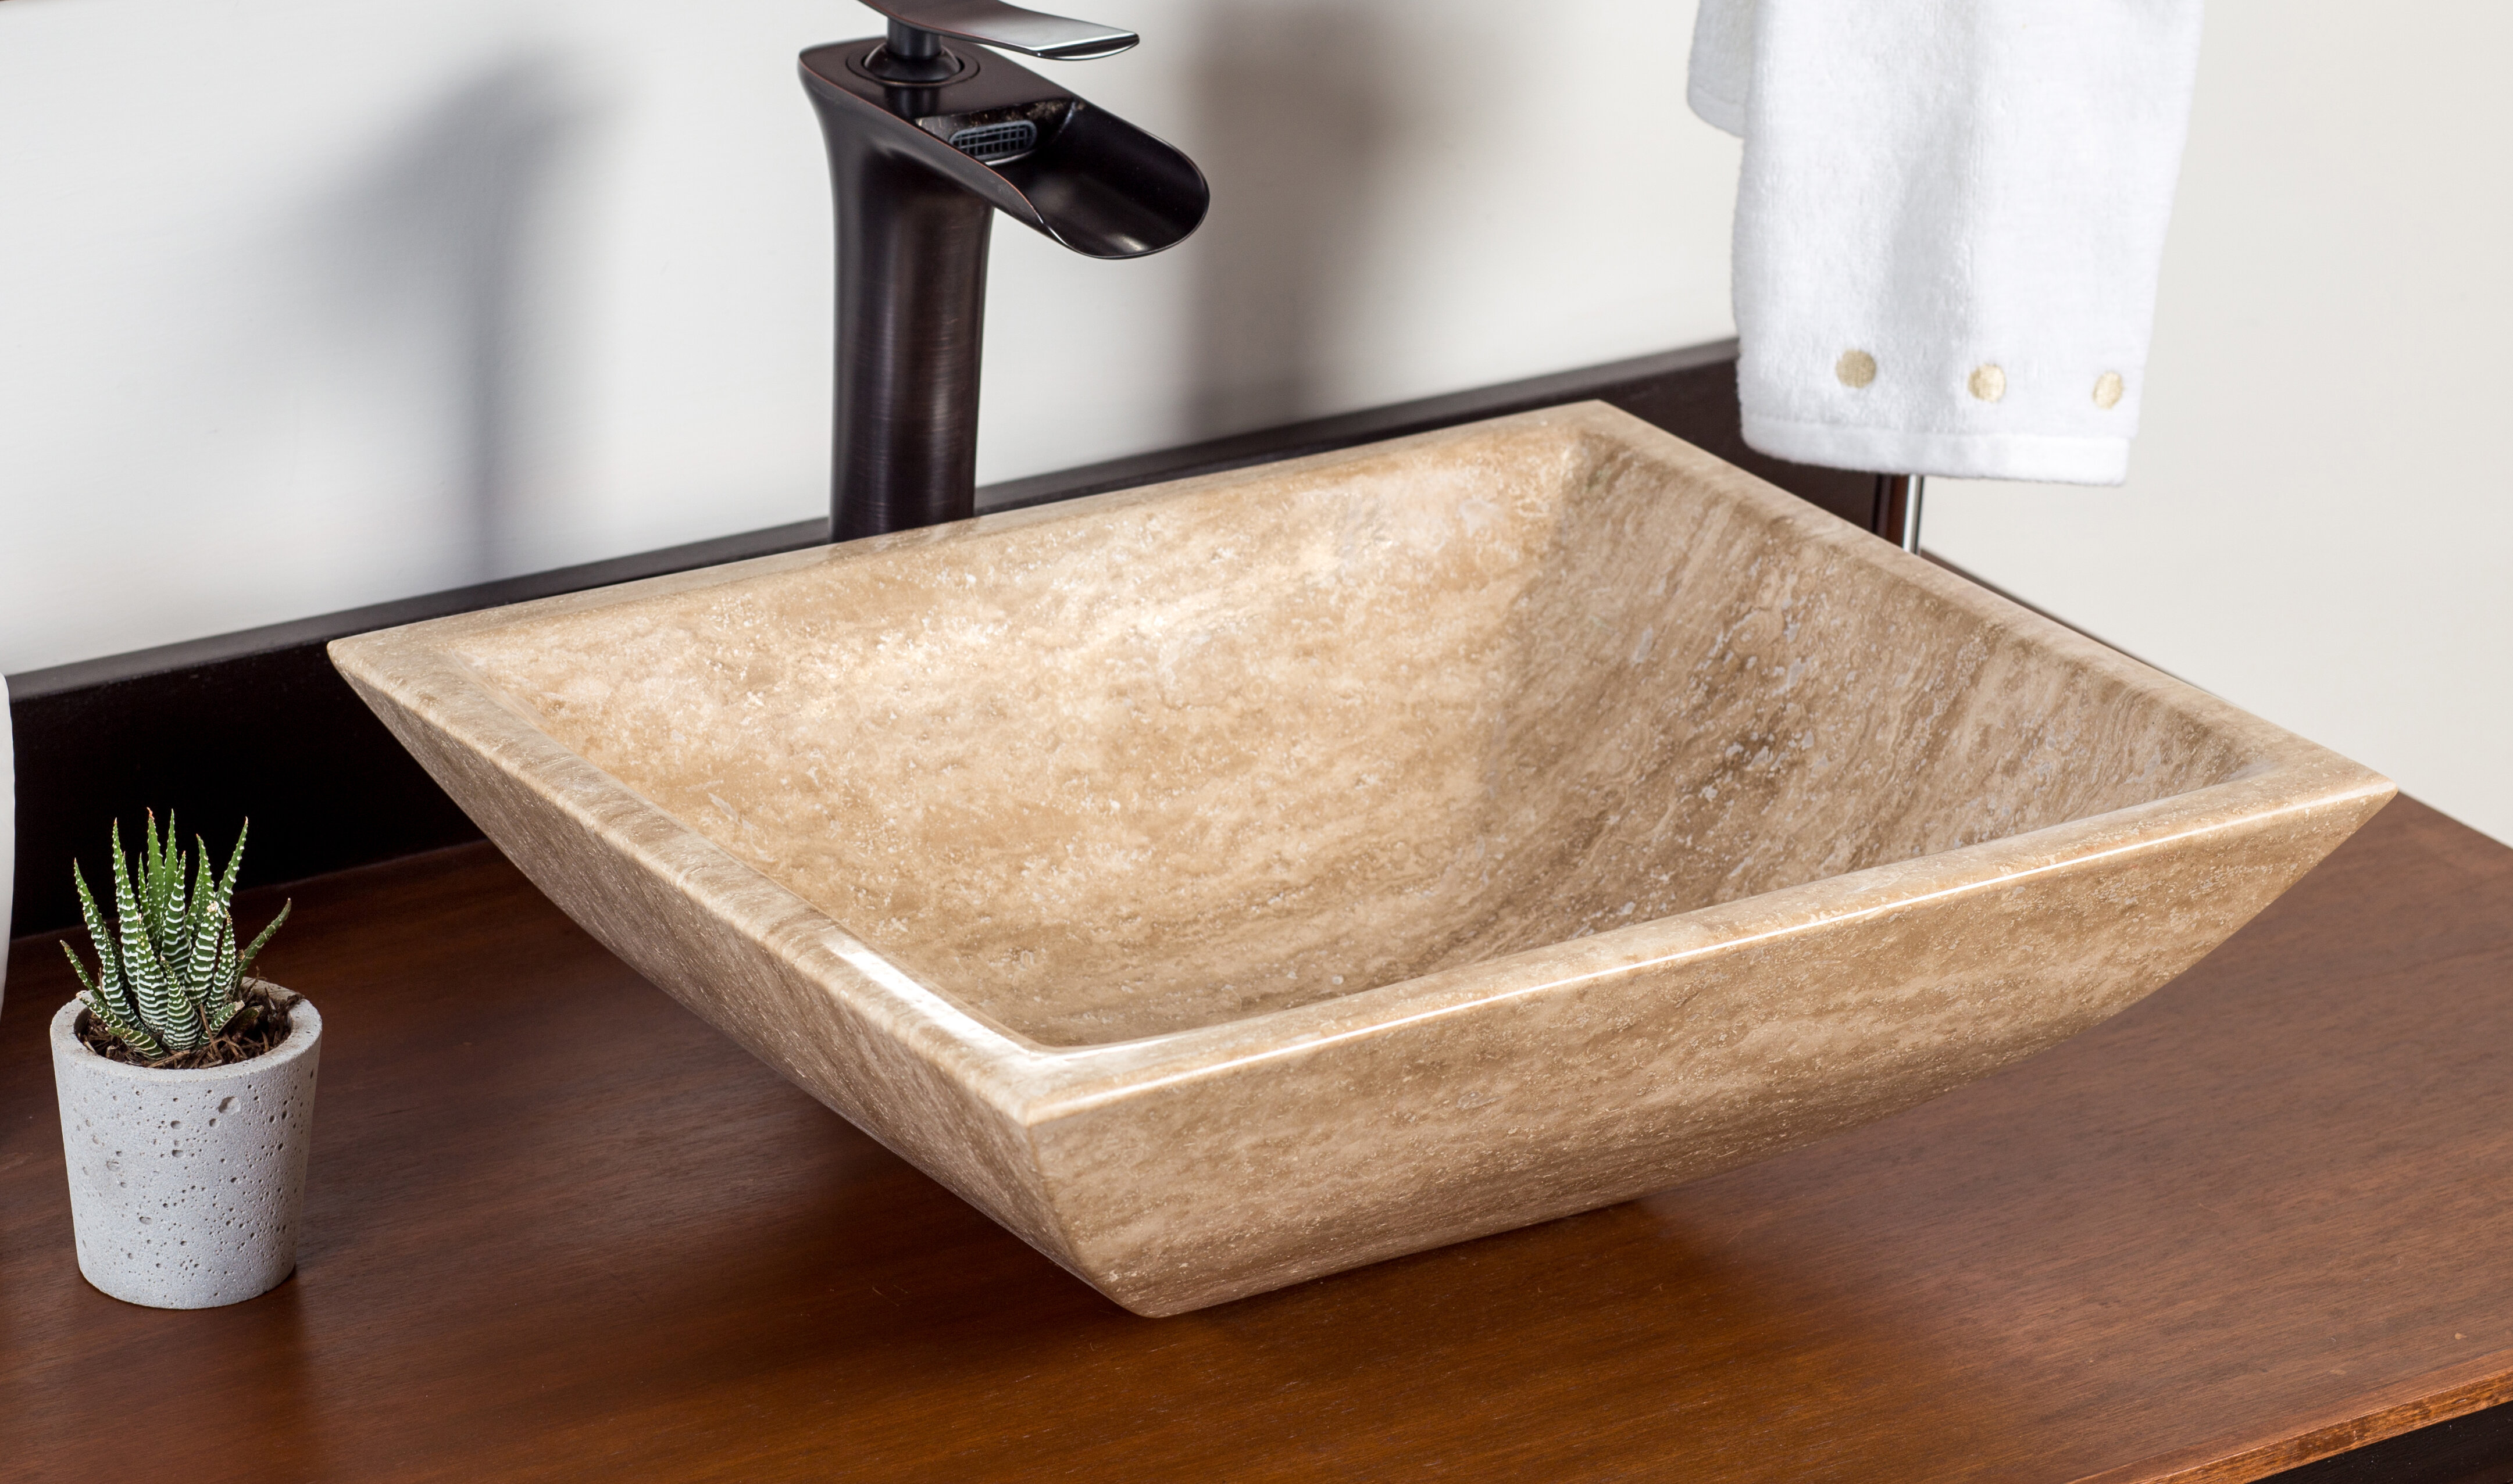 Laguna marble sivas stone rectangular vessel bathroom sink wayfair